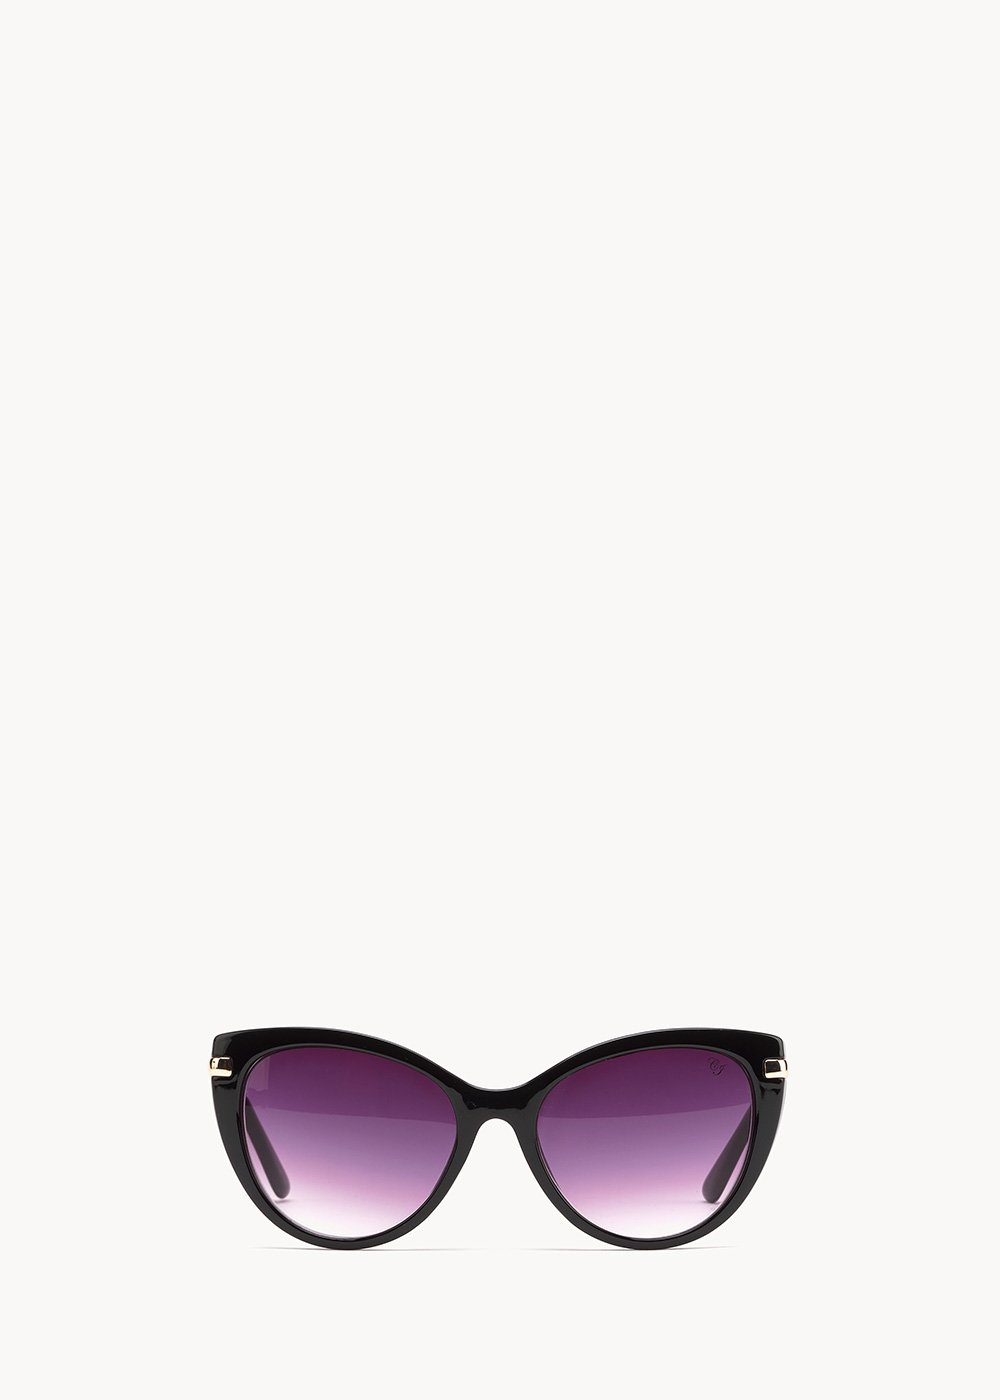 cat model sunglasses with matching frame - Black - Woman